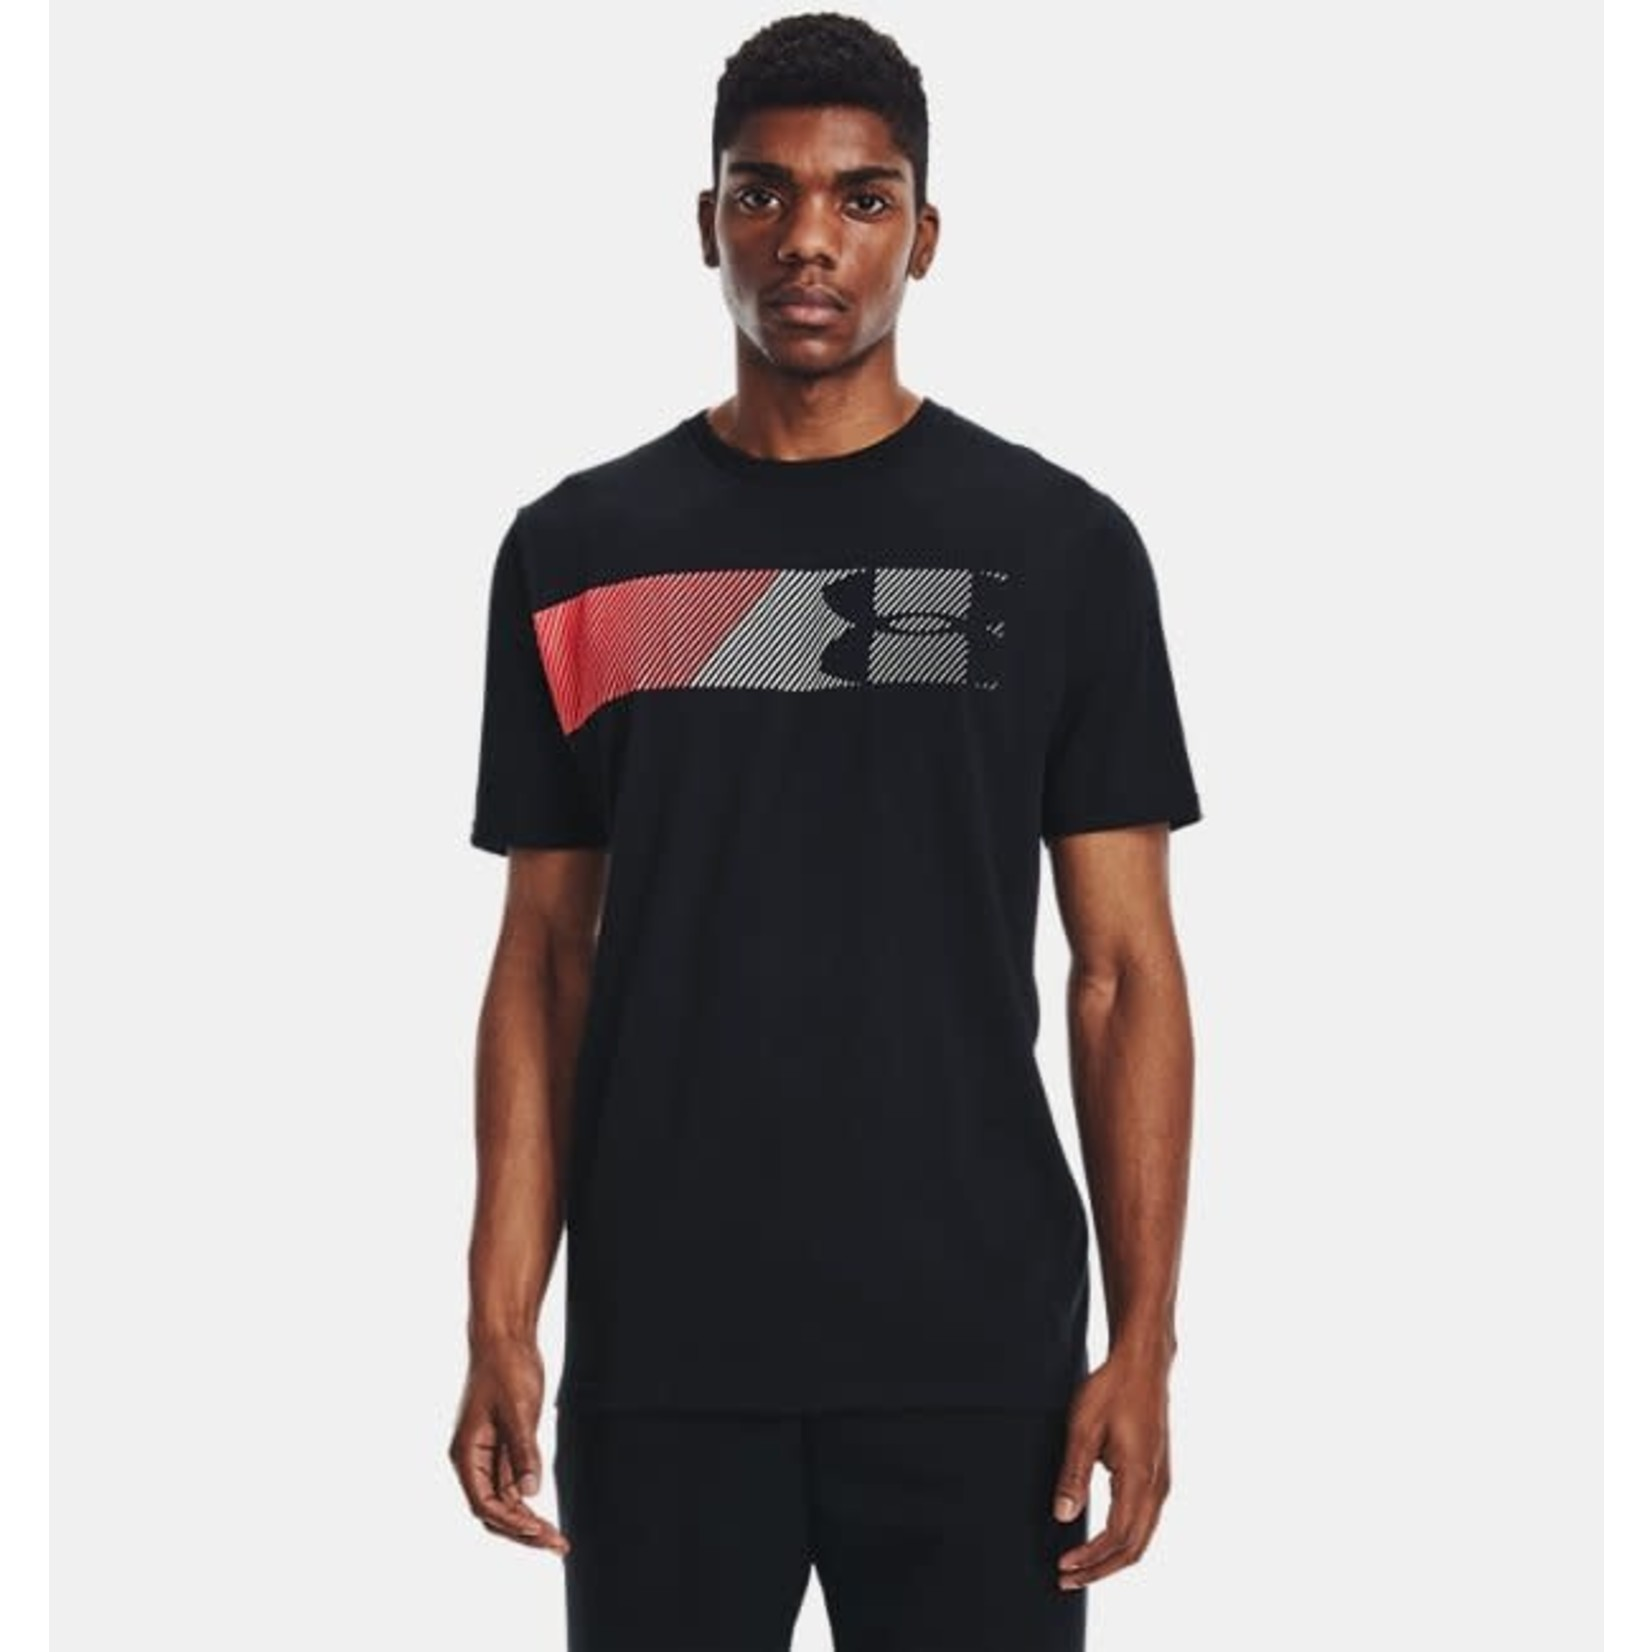 Under Armour Under Armour T-Shirt, Fast Left Chest 2.0, Mens